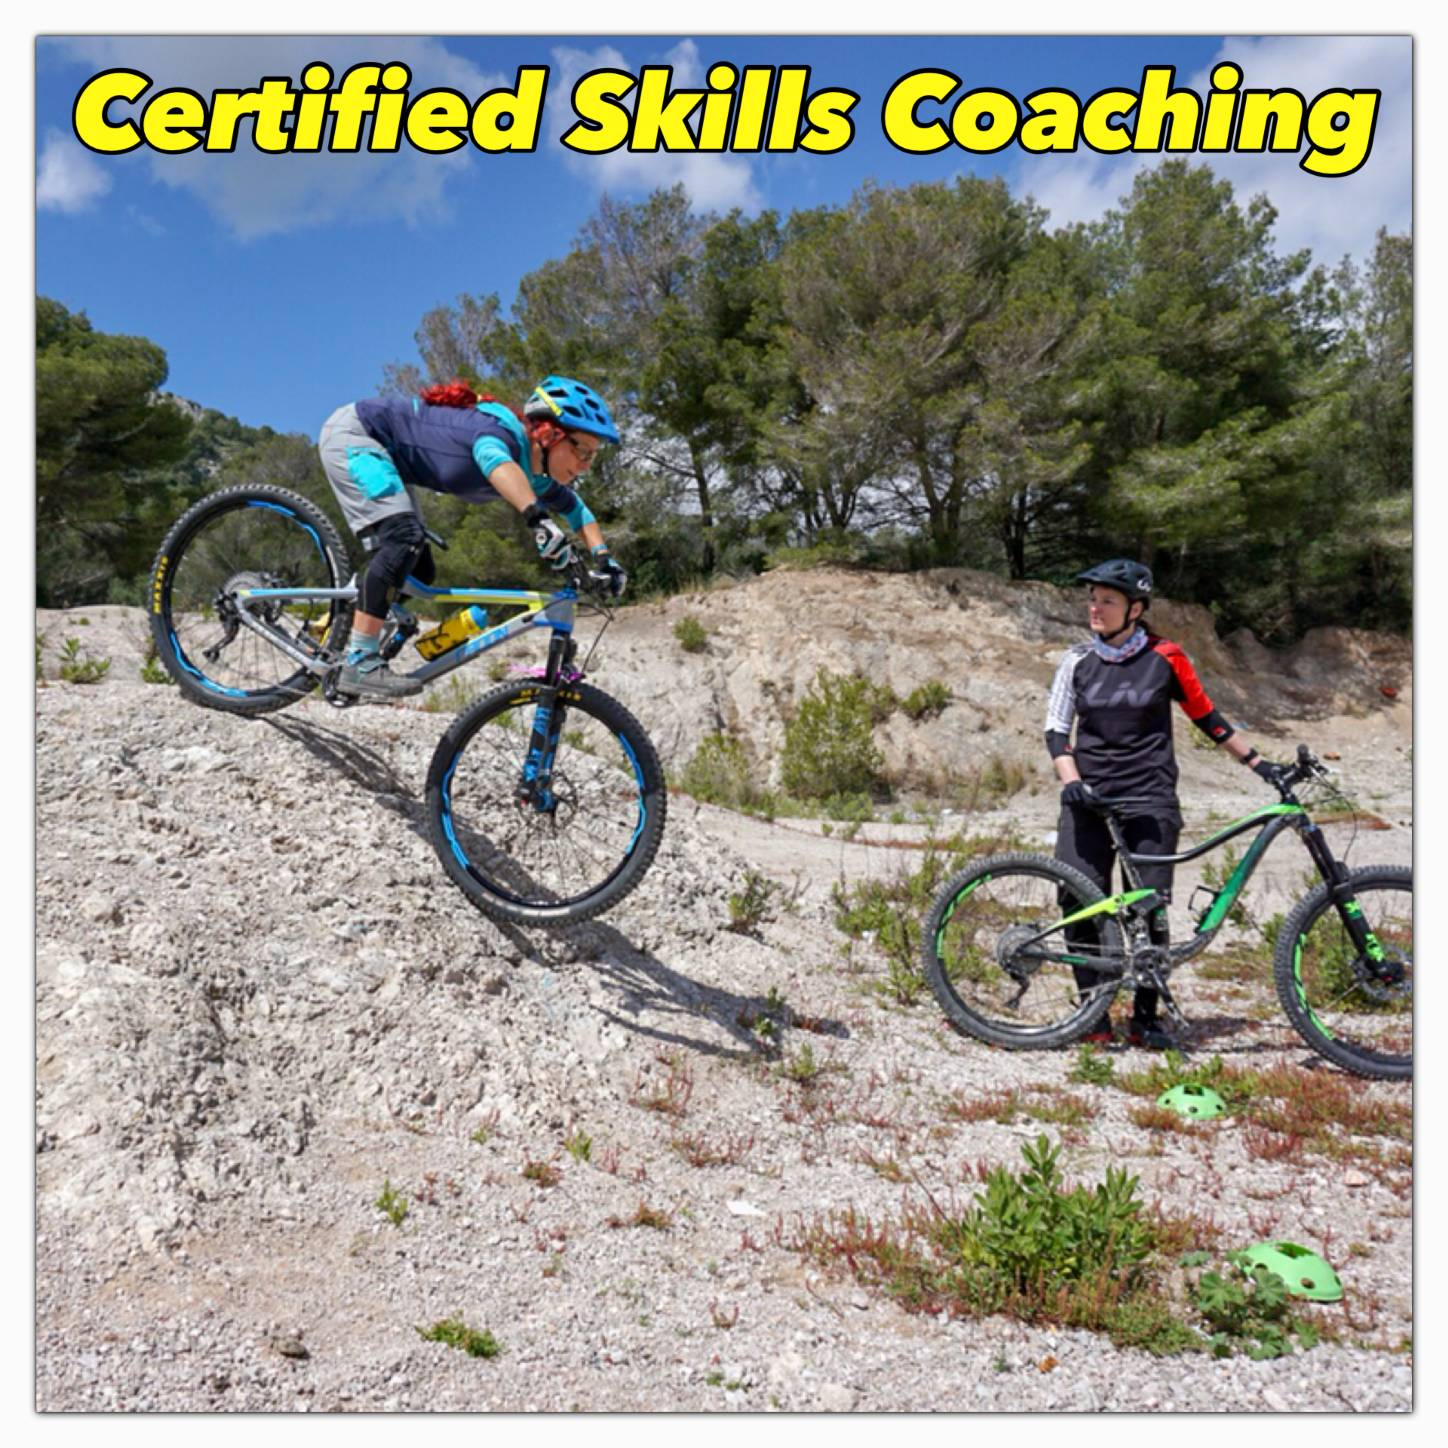 Roxybike is the only licenced and certified skills coaching institution in Mallorca!